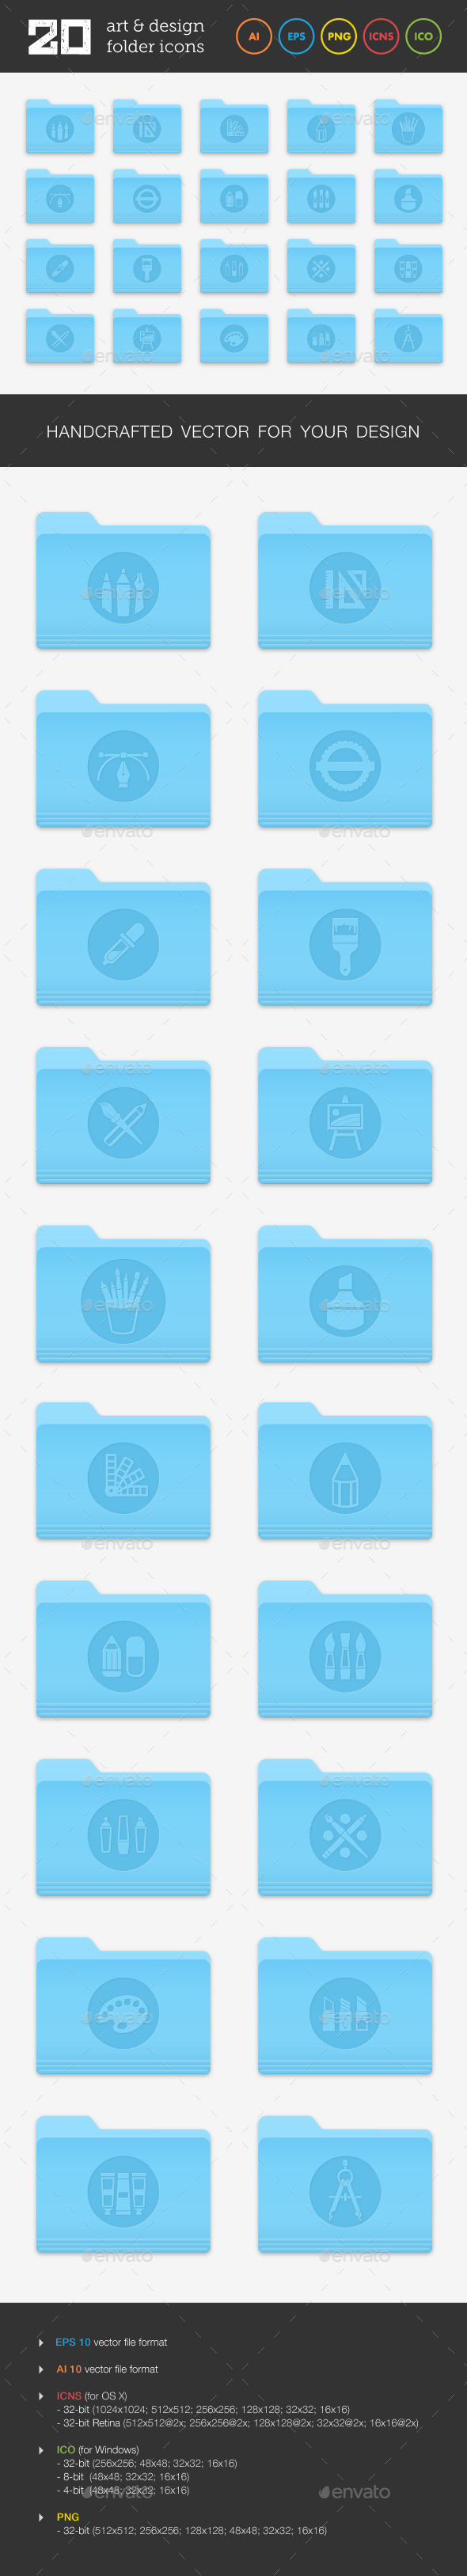 GraphicRiver Art and Design Folder Icons Set 2 9304174